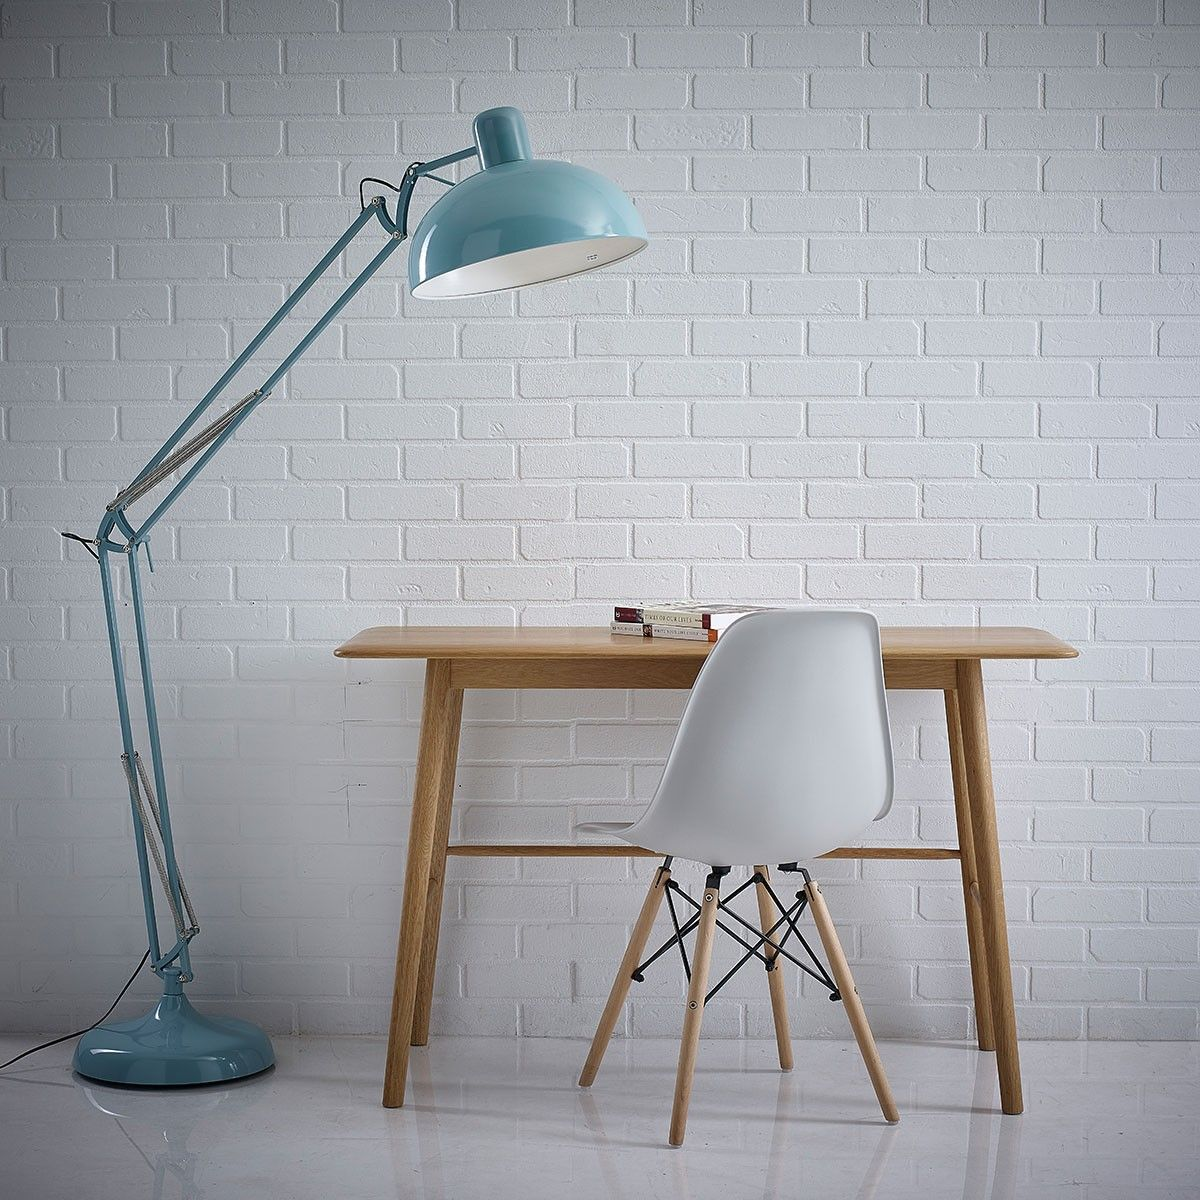 Blue floor lamp  HUTCH  Retro Pale Blue Angled Floor Lamp  Brights  Pinterest